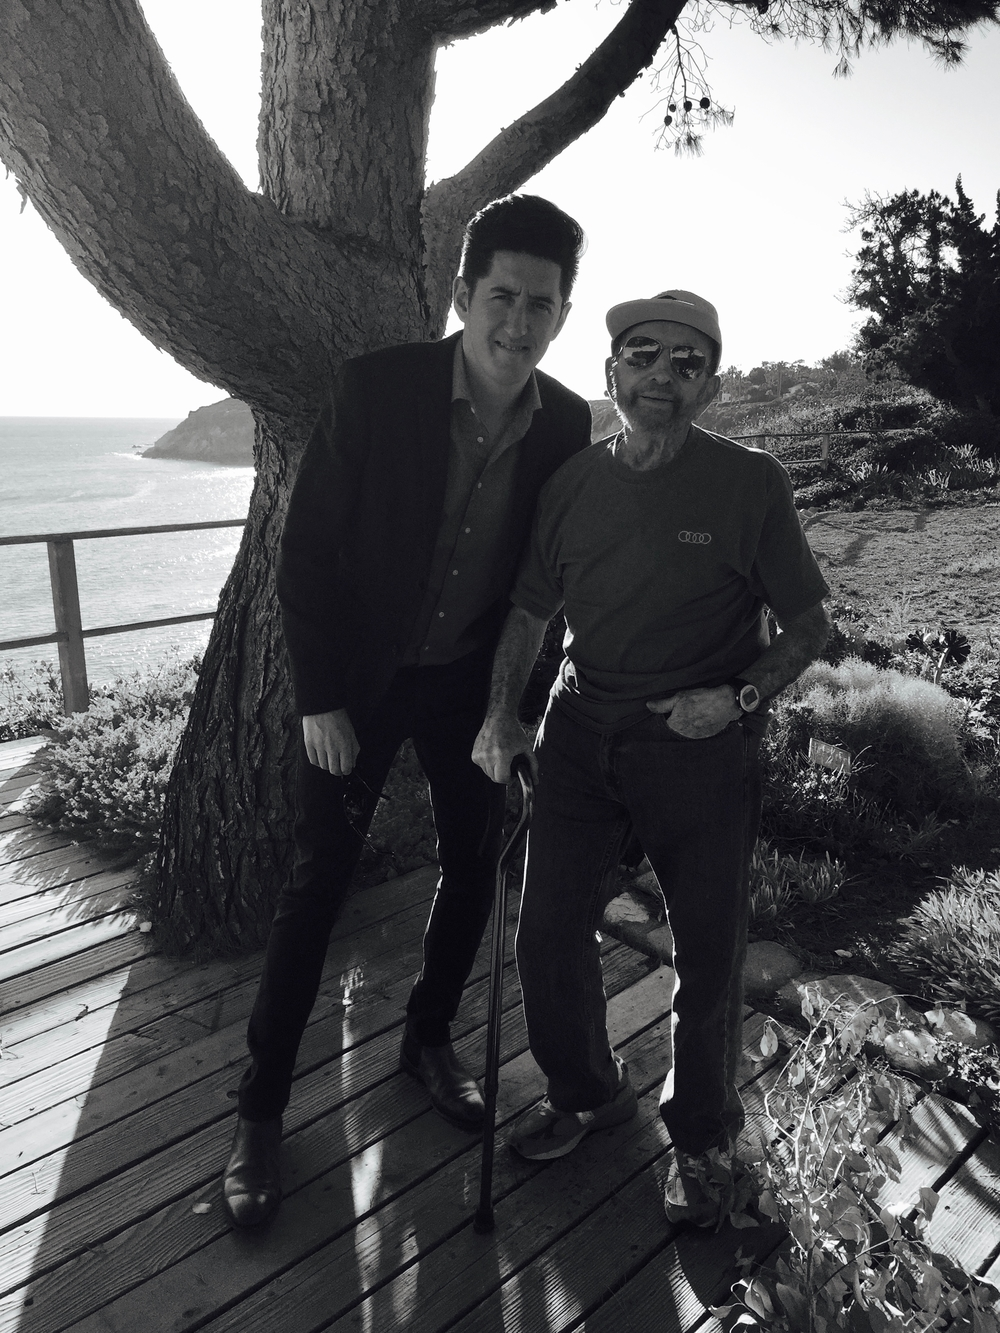 With the master, Johnny Mandel. Malibu CA, November 2015